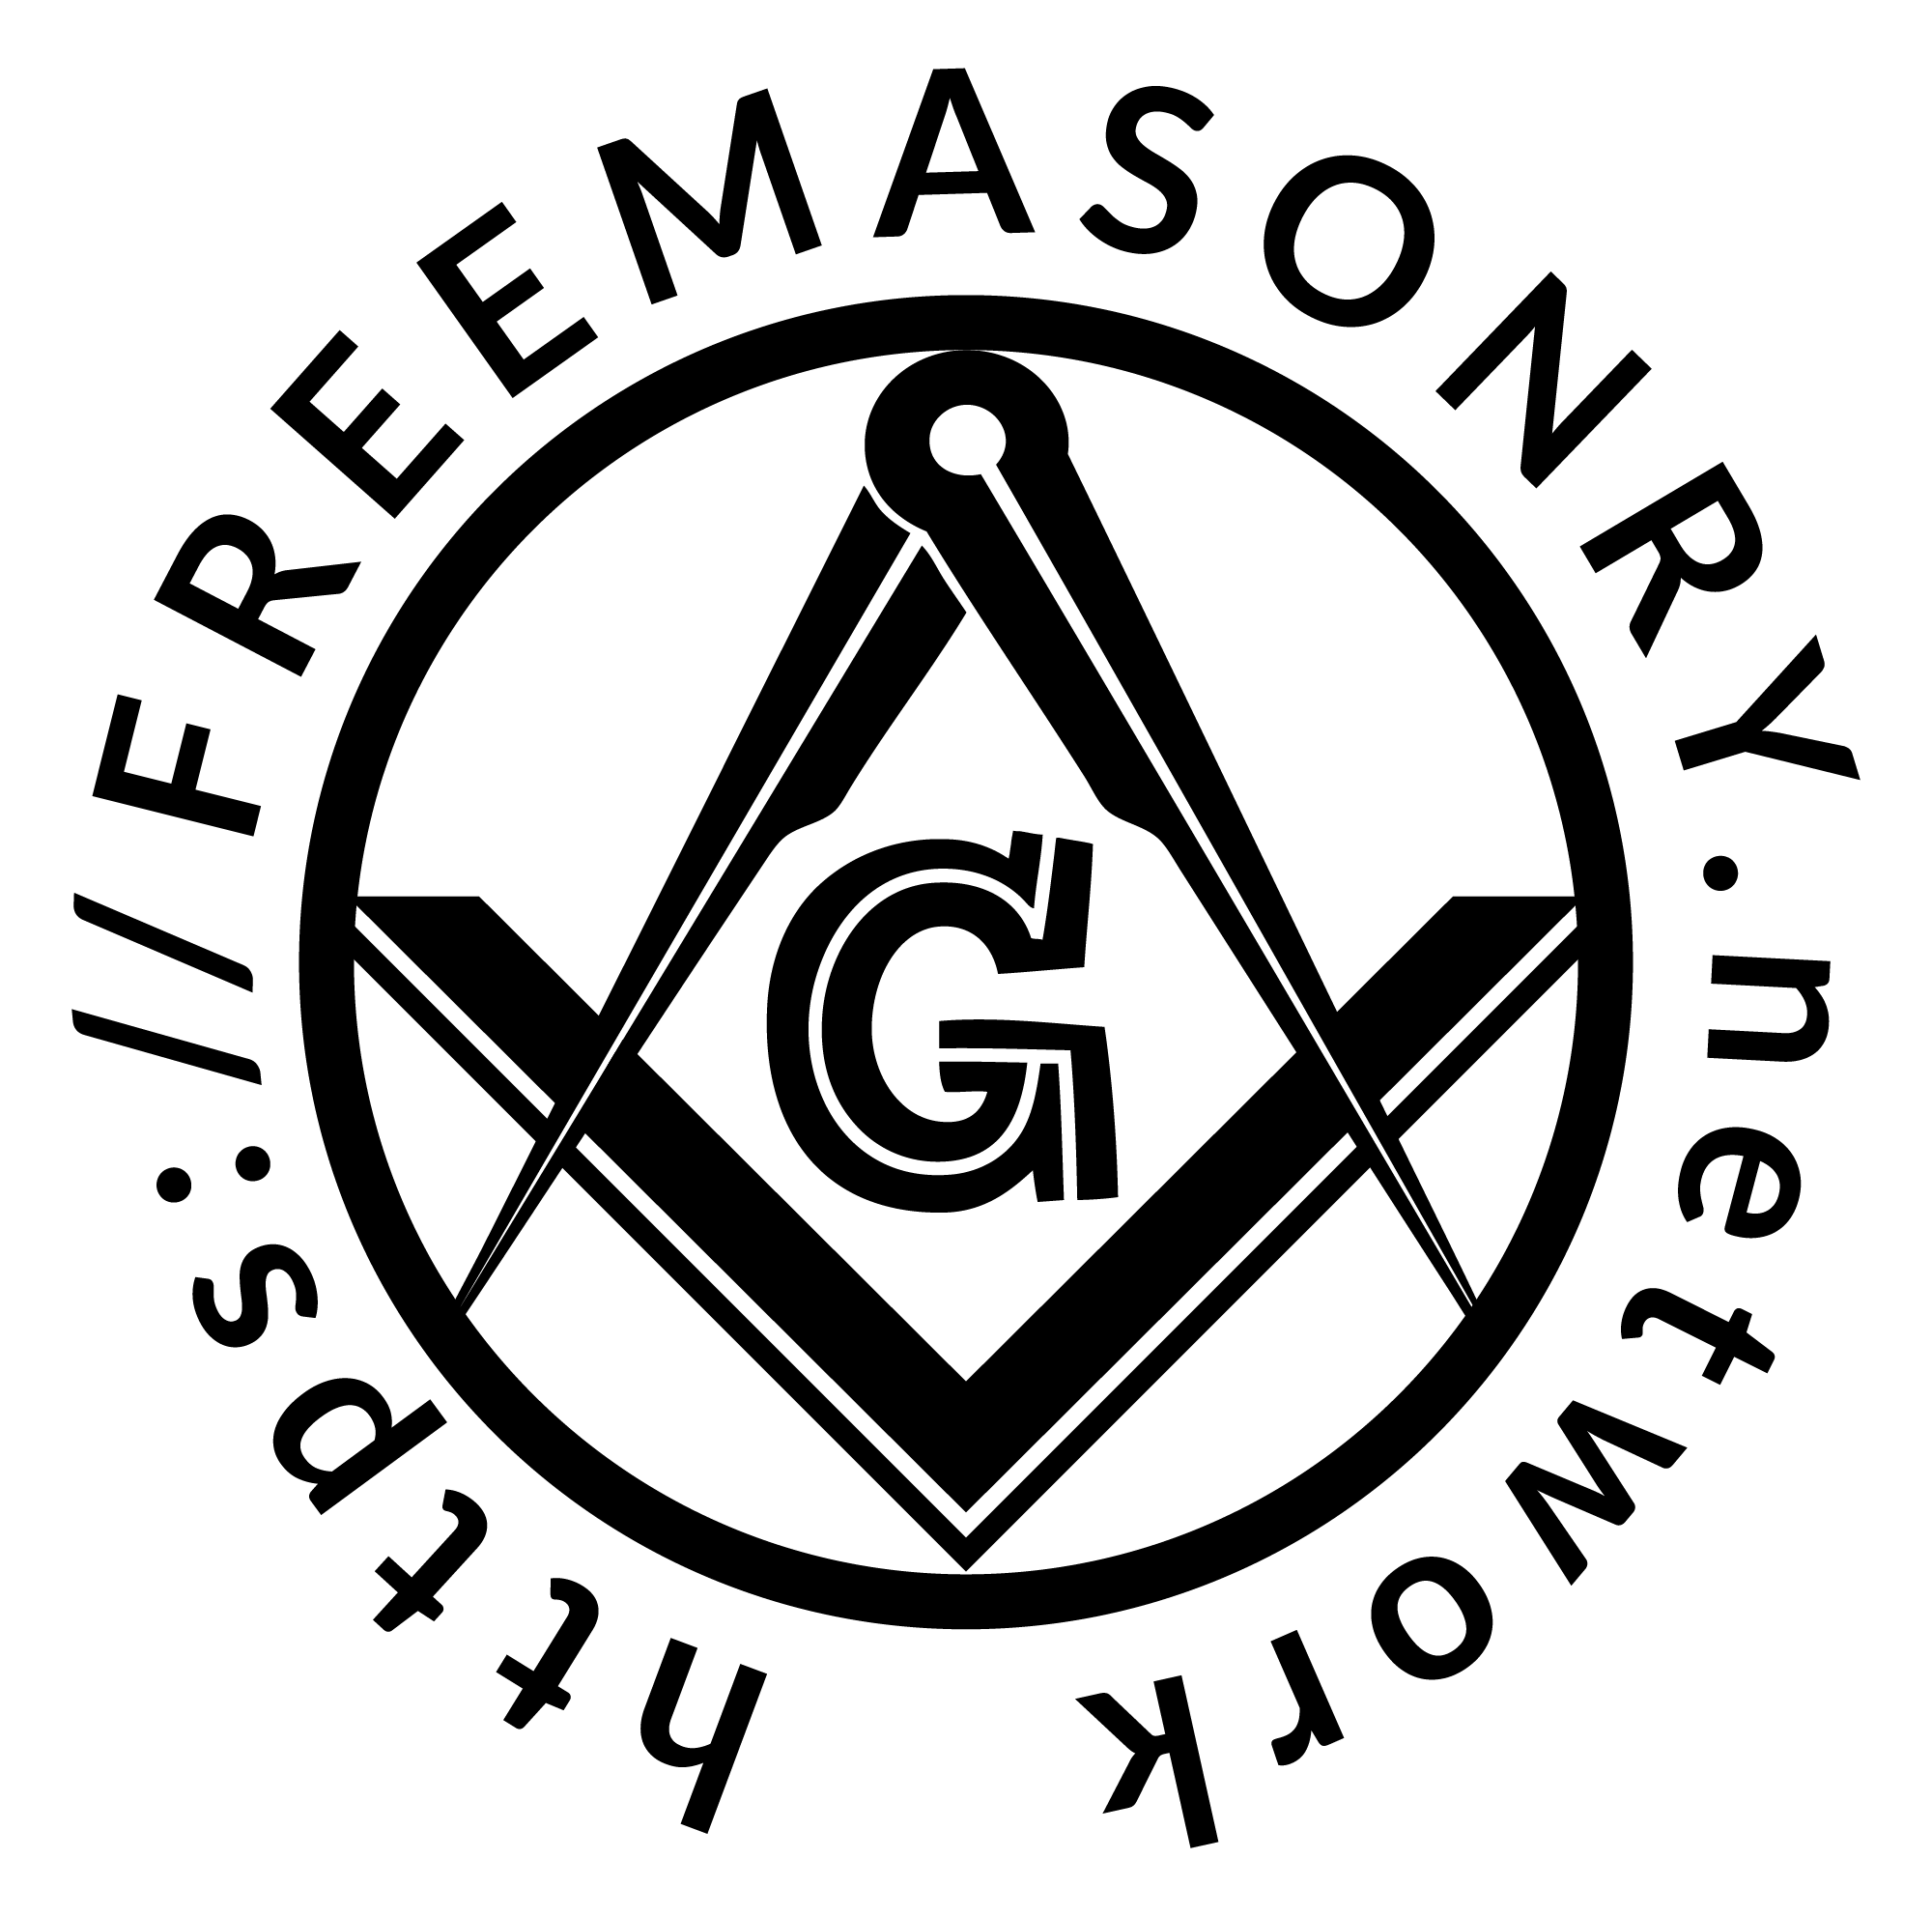 ROYAL ARCH MASONRY ADMINISTRATIVE ORGANIZATION